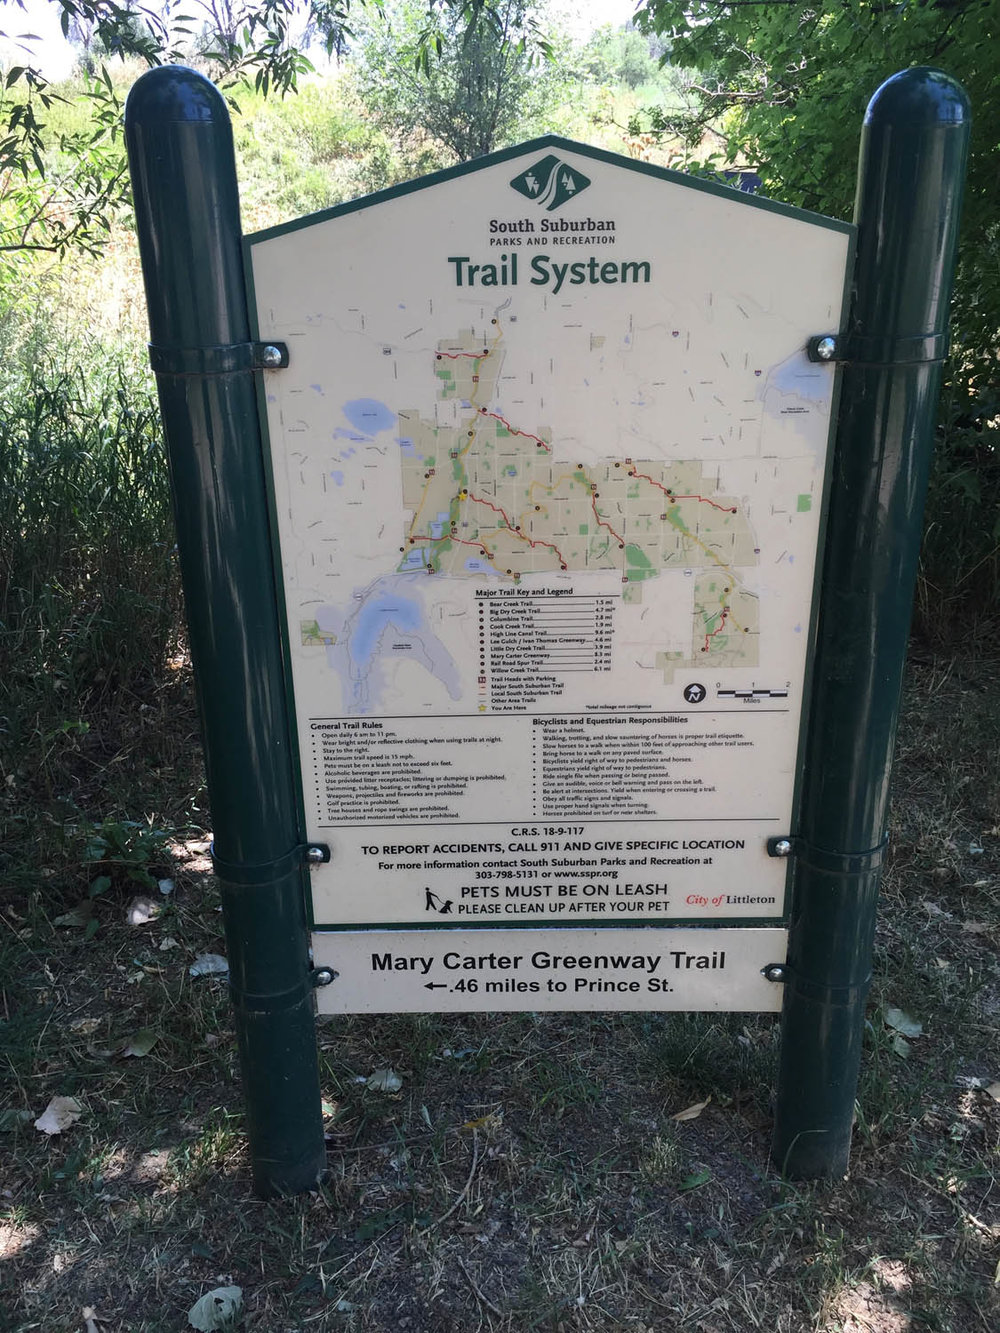 South suburban trail system along Platte River Trail in Littleton, CO